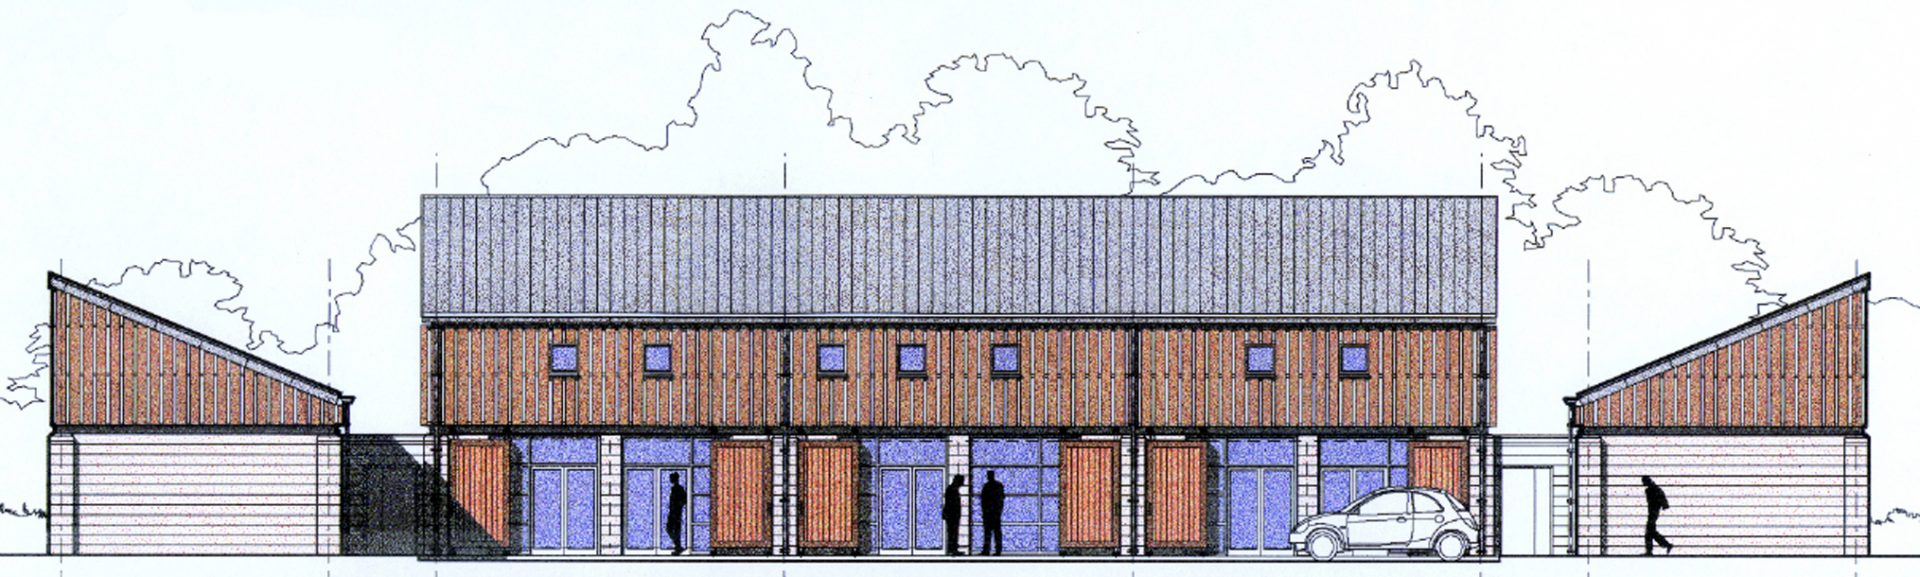 Herefordshire Food & Drink Centre Elevation